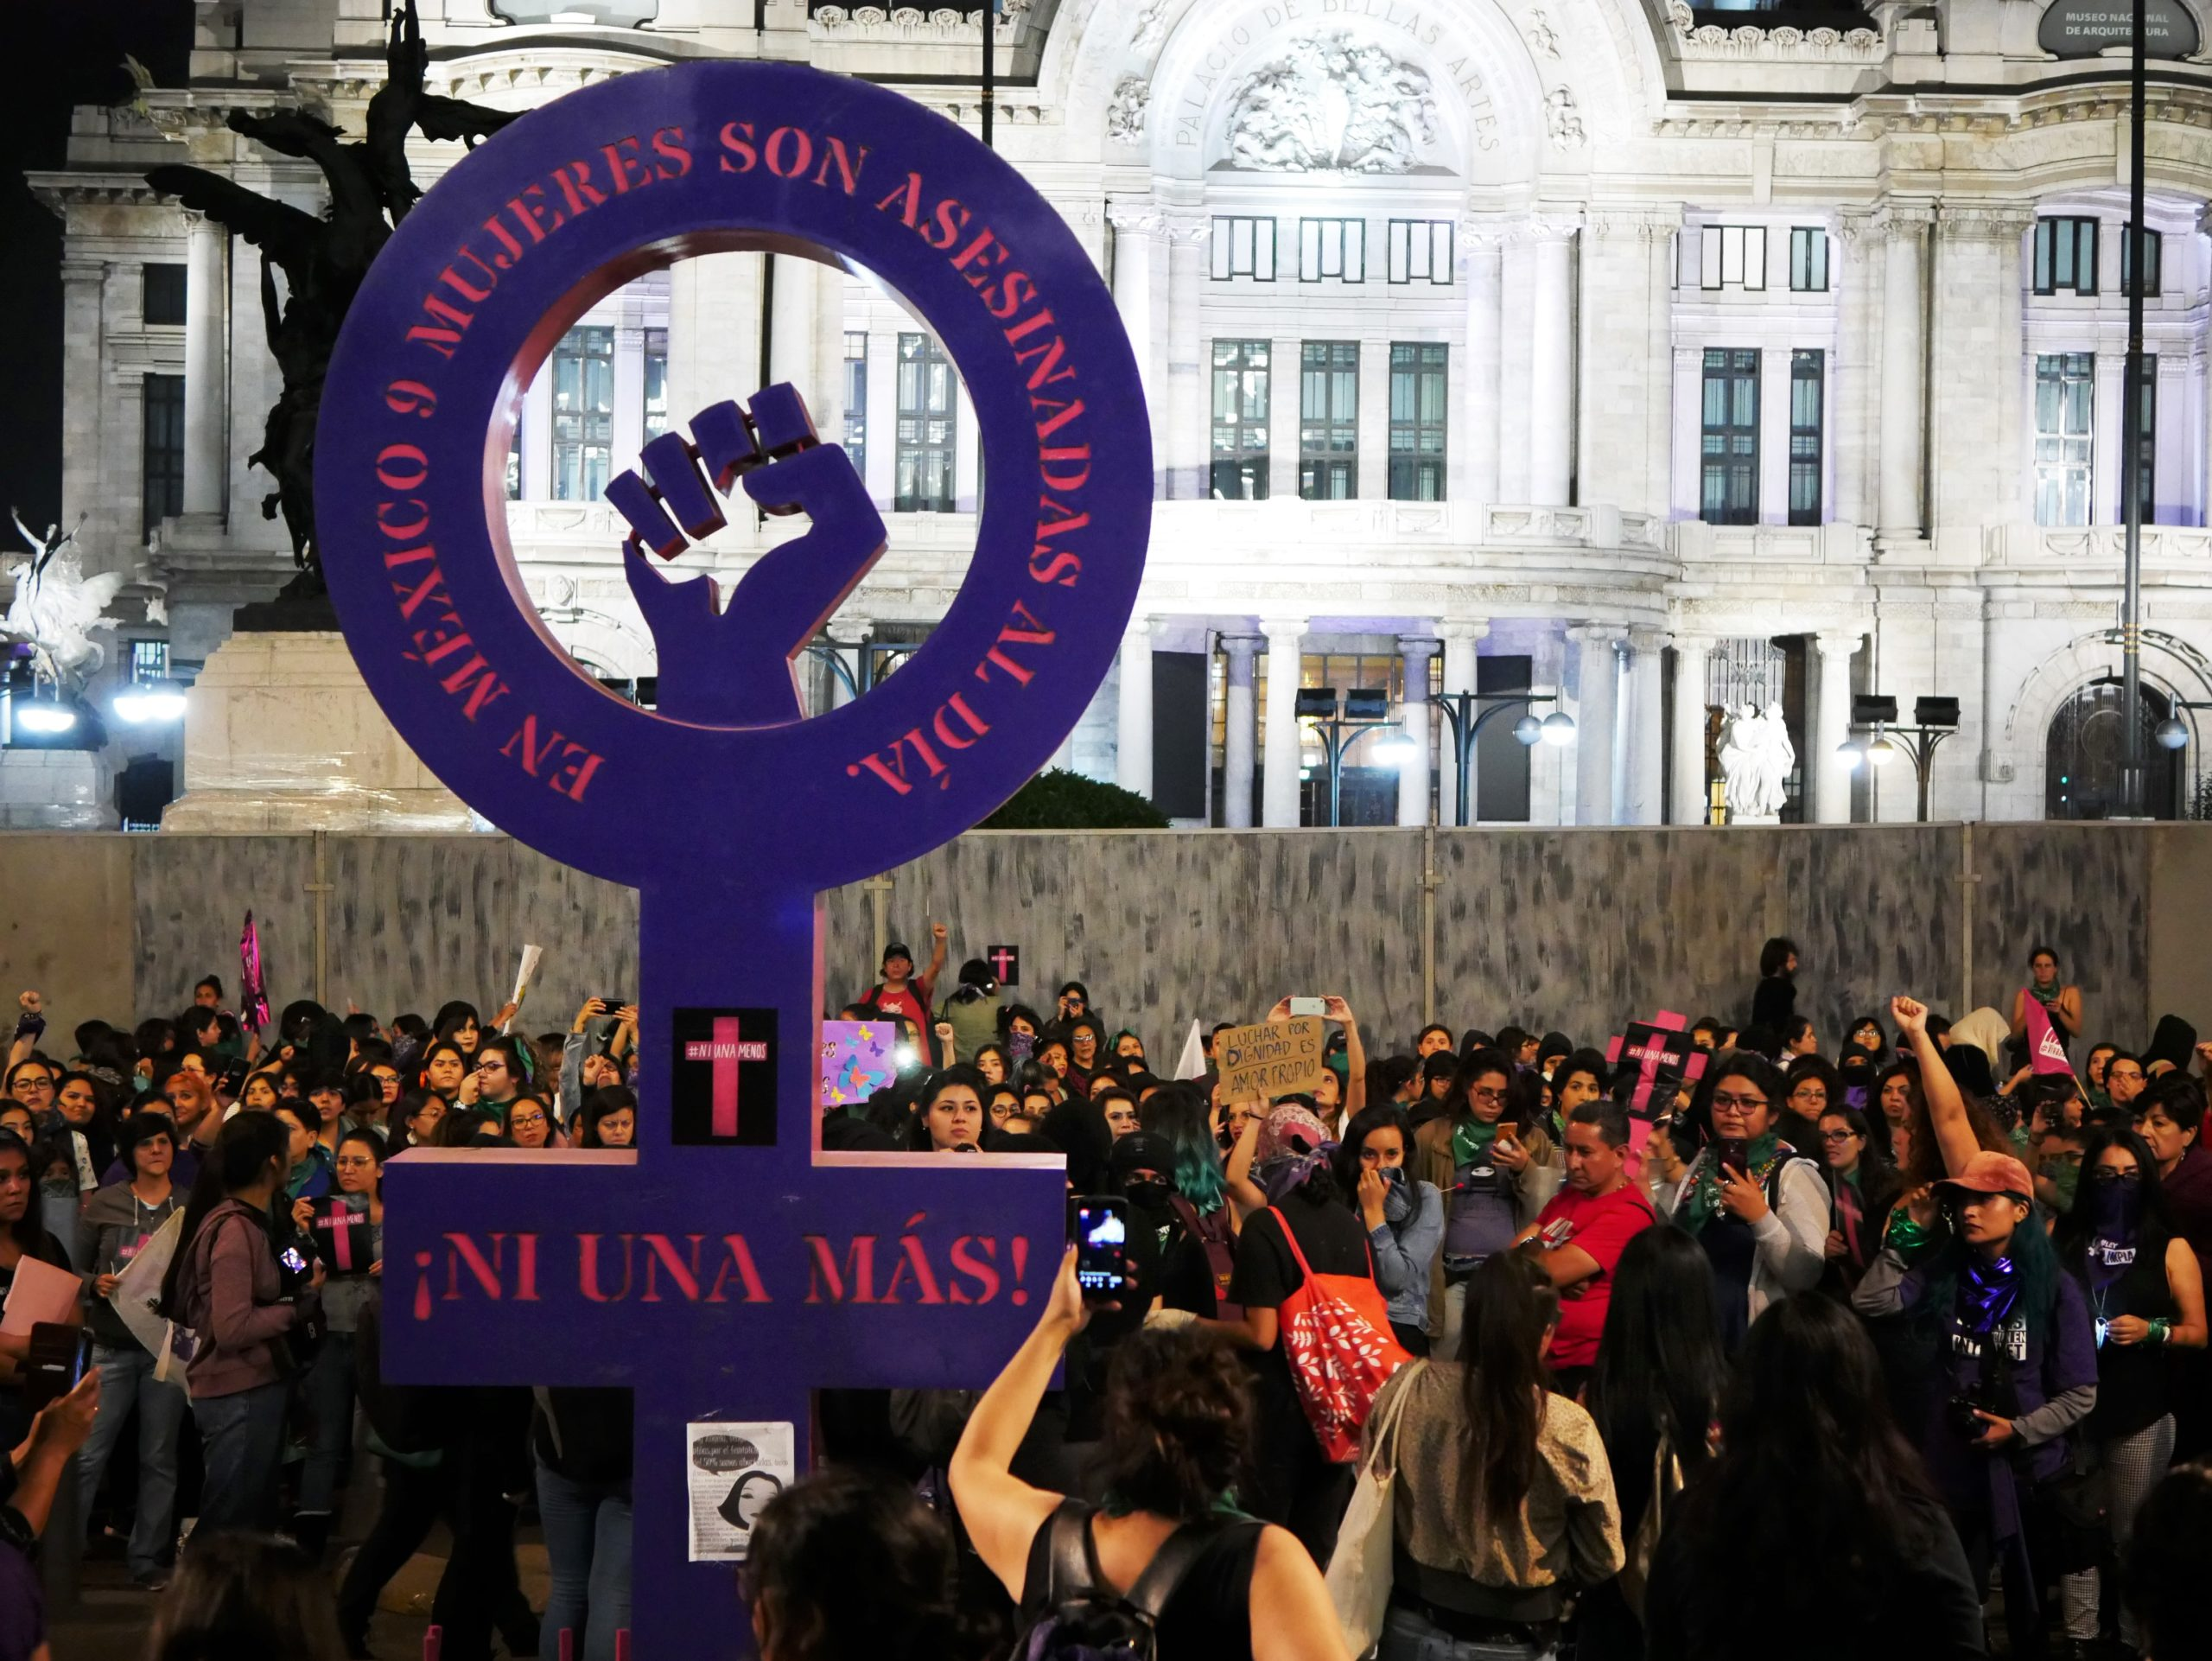 International Day for the Elimination of Violence against Women 2019 march in Mexico City